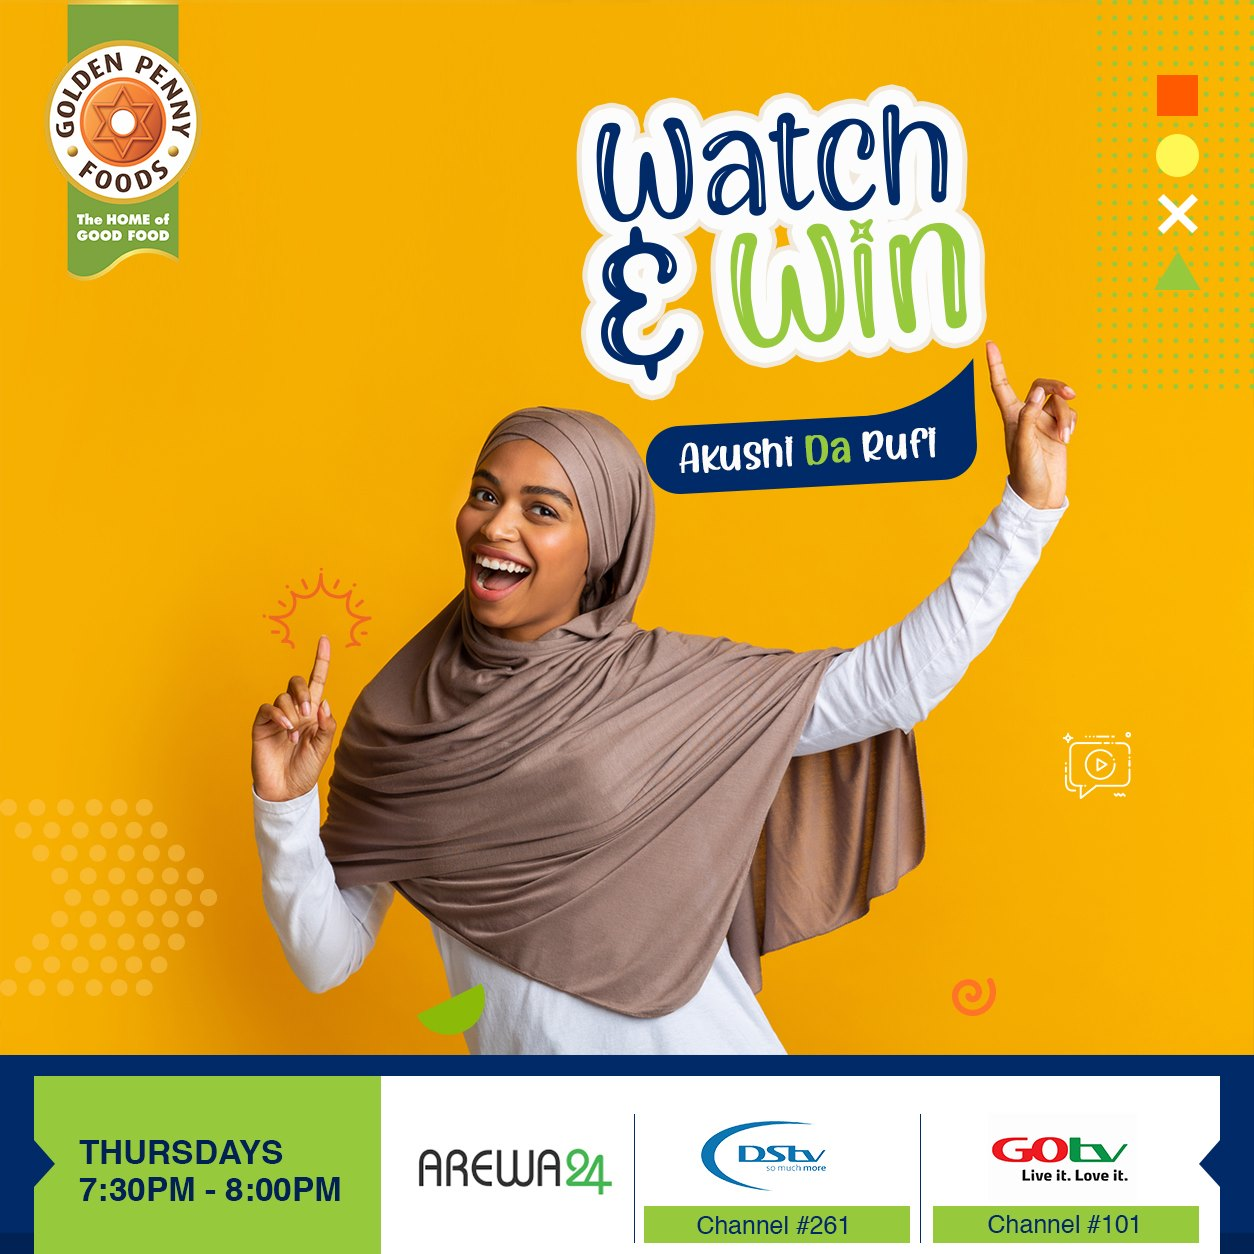 Watch and Win Prizes With Golden Penny Semovita.